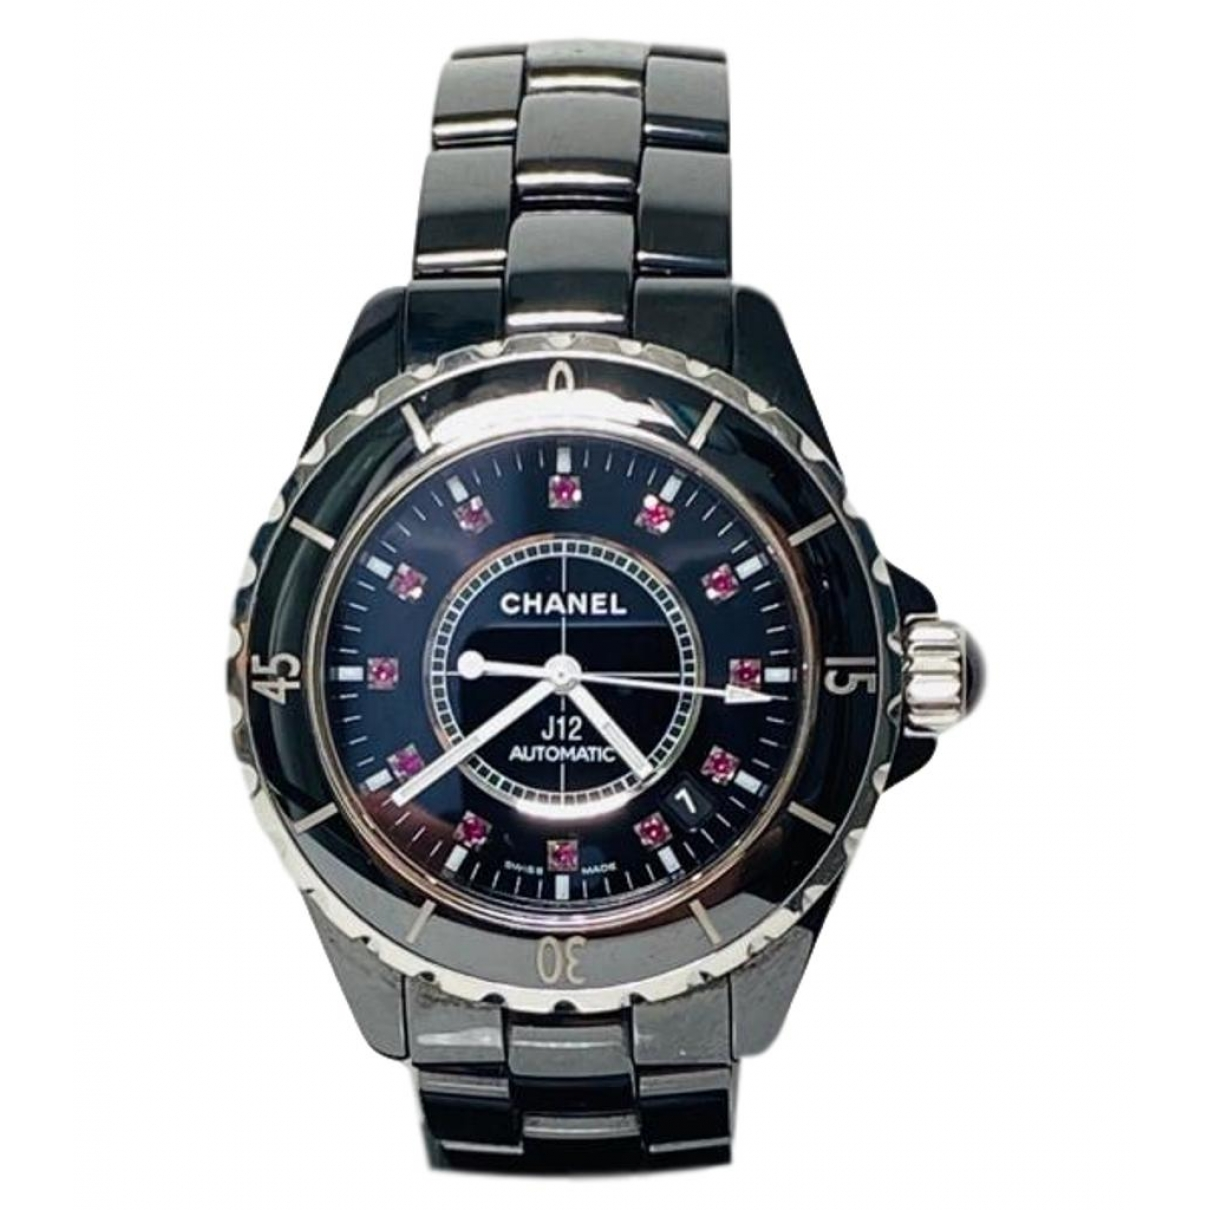 Reloj J12 Automatique Chanel